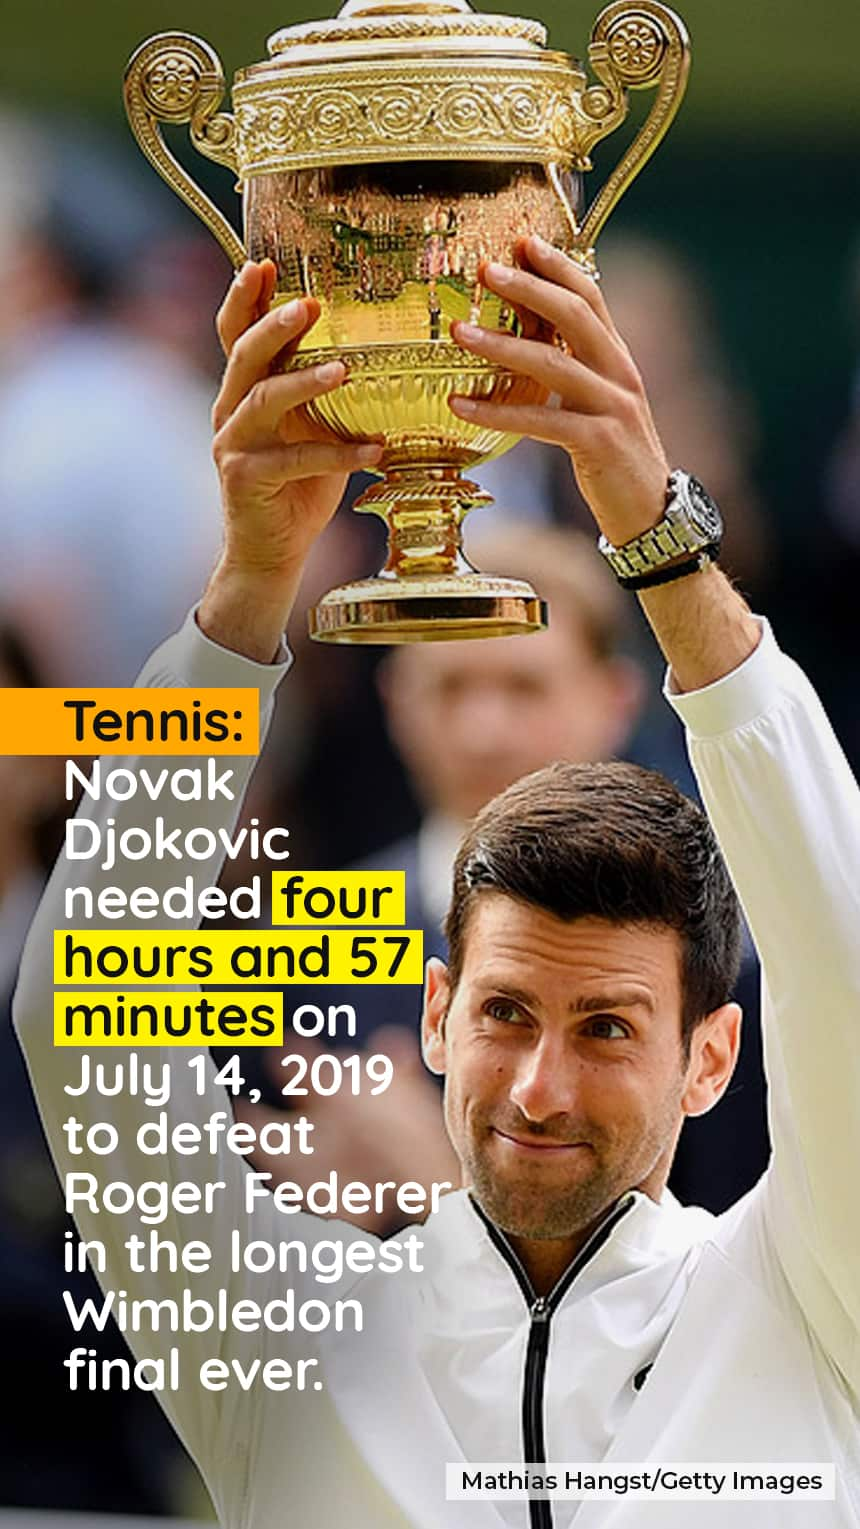 Tennis: Novak Djokovic needed four hours and 57 minutes on July 14, 2019 to defeat Roger Federer in the longest Wimbledon final ever.